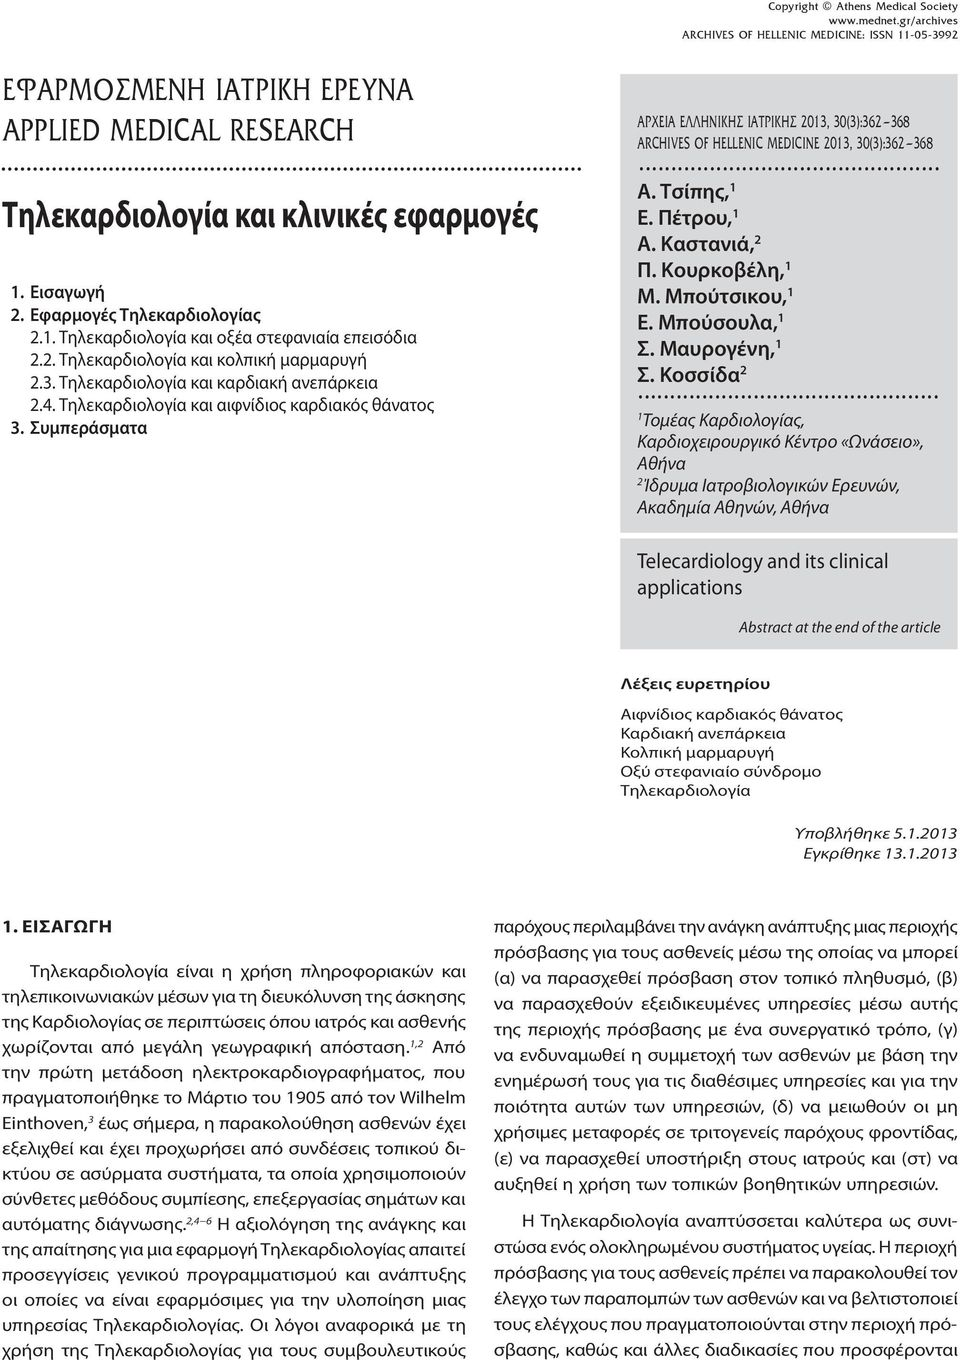 gr/archives ARCHIVES OF HELLENIC MEDICINE: ISSN 11-05-3992 ARCHIVES OF HELLENIC MEDICINE 2013, 30(3):362-368... Α. Τσίπης, 1 Ε. Πέτρου, 1 Α. Καστανιά, 2 Π. Κουρκοβέλη, 1 Μ. Μπούτσικου, 1 Ε.